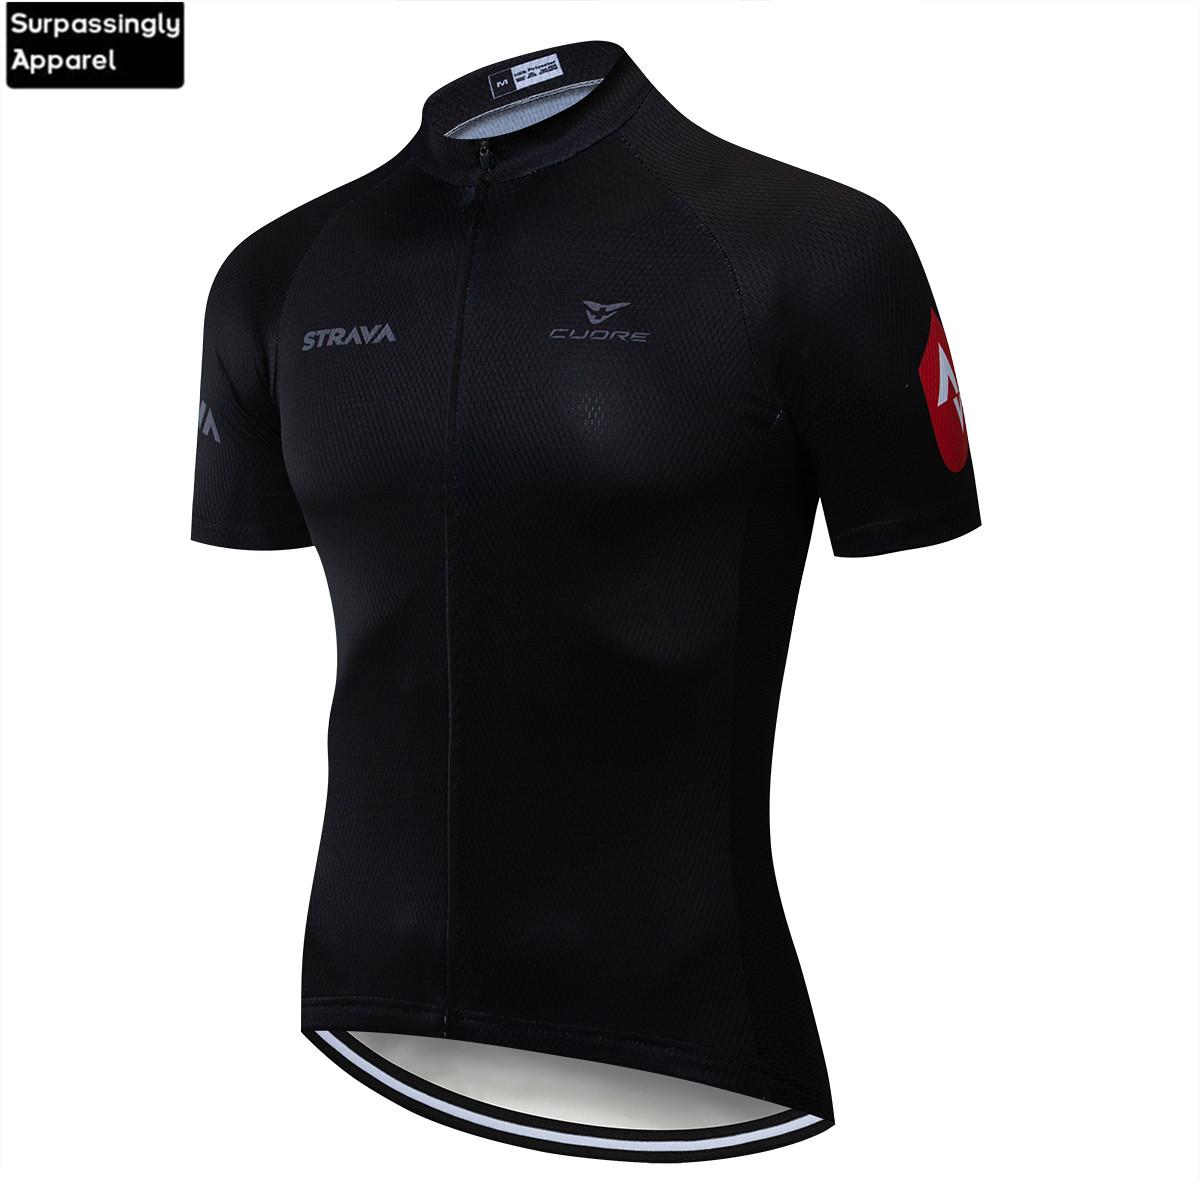 2019 World UCI Tour Team <font><b>Strava</b></font> Cycling Jersey MTB Ropa Ciclismo Mens Black Summer Bicycle Bicycling <font><b>Shirts</b></font> Maillot <font><b>Bike</b></font> Wear image